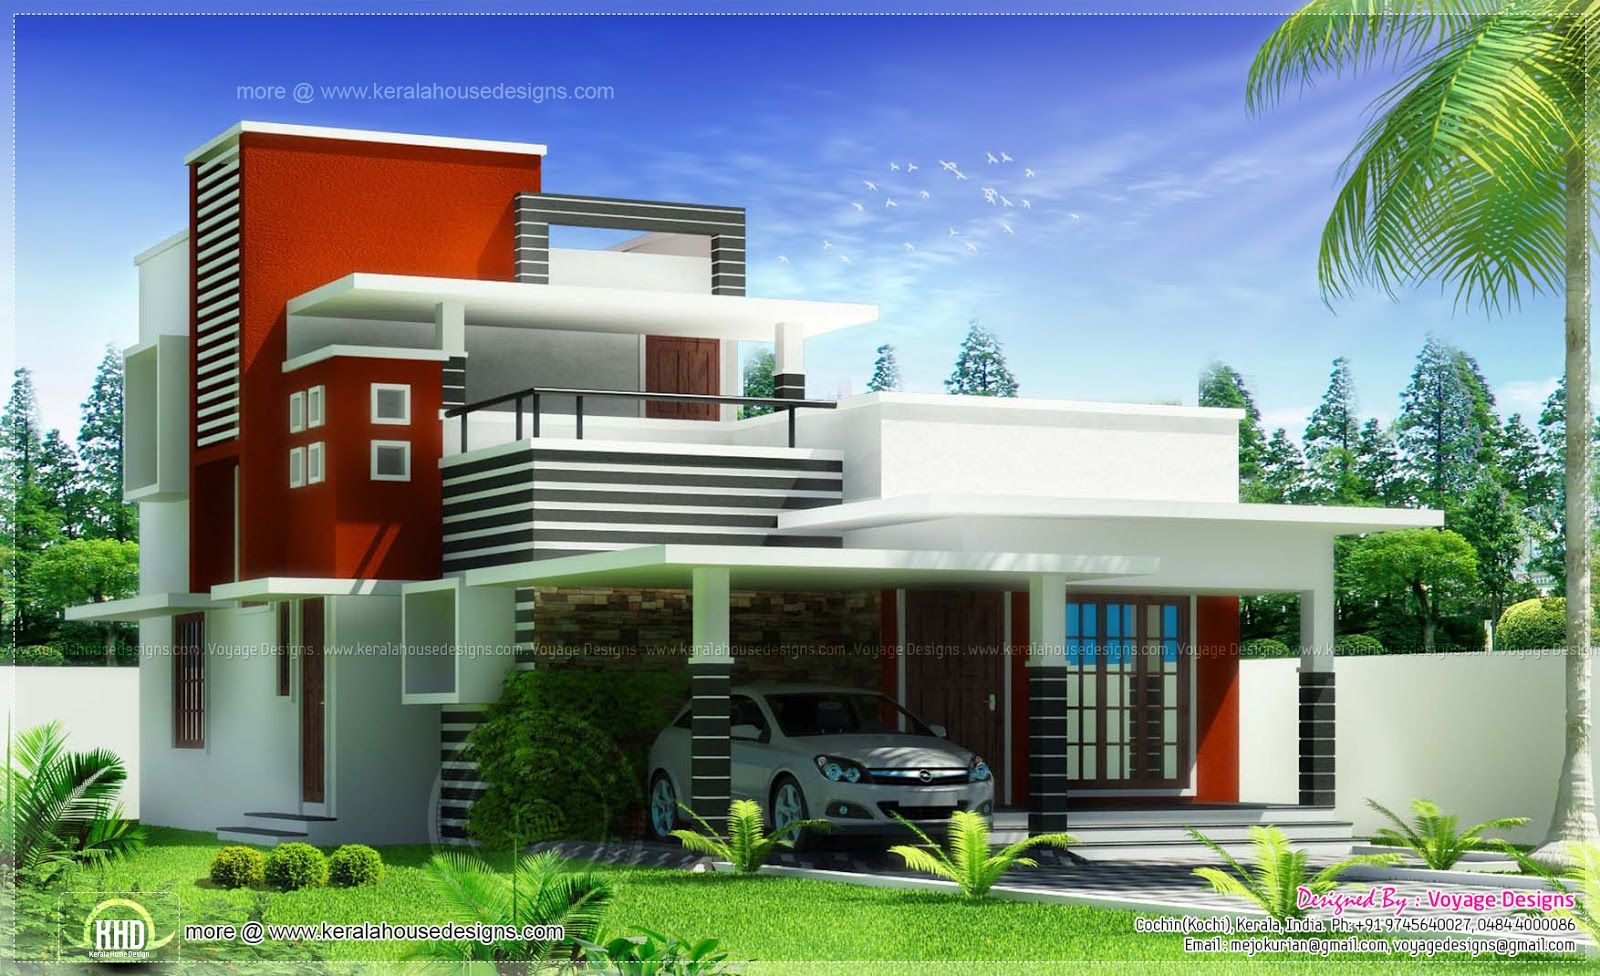 Kerala house designs architecture pinterest kerala for Small house design kerala style